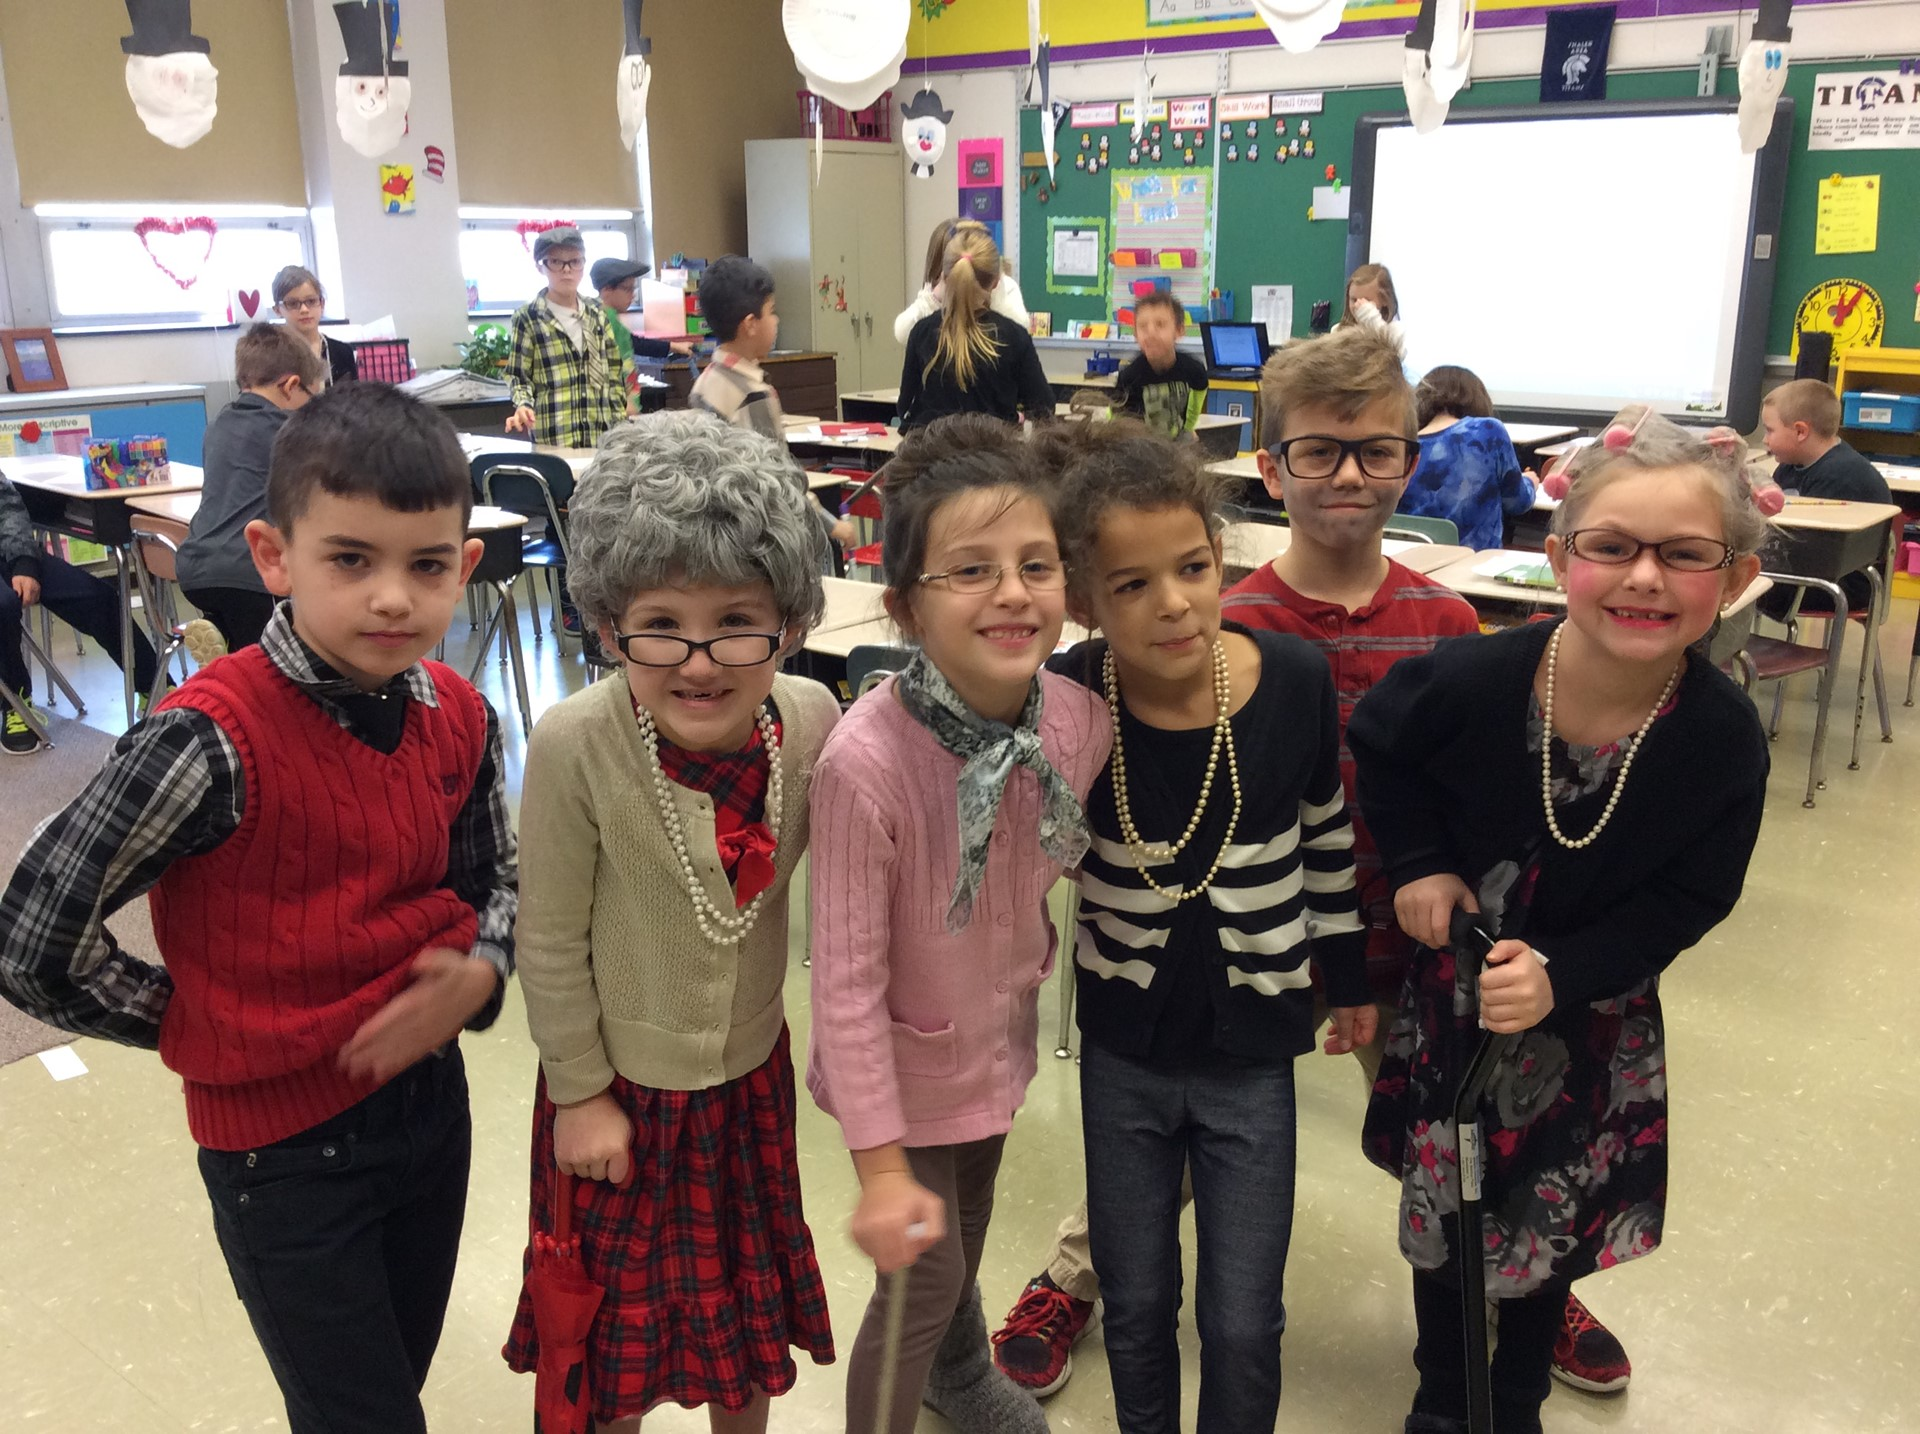 2A celebrates 101th day of school